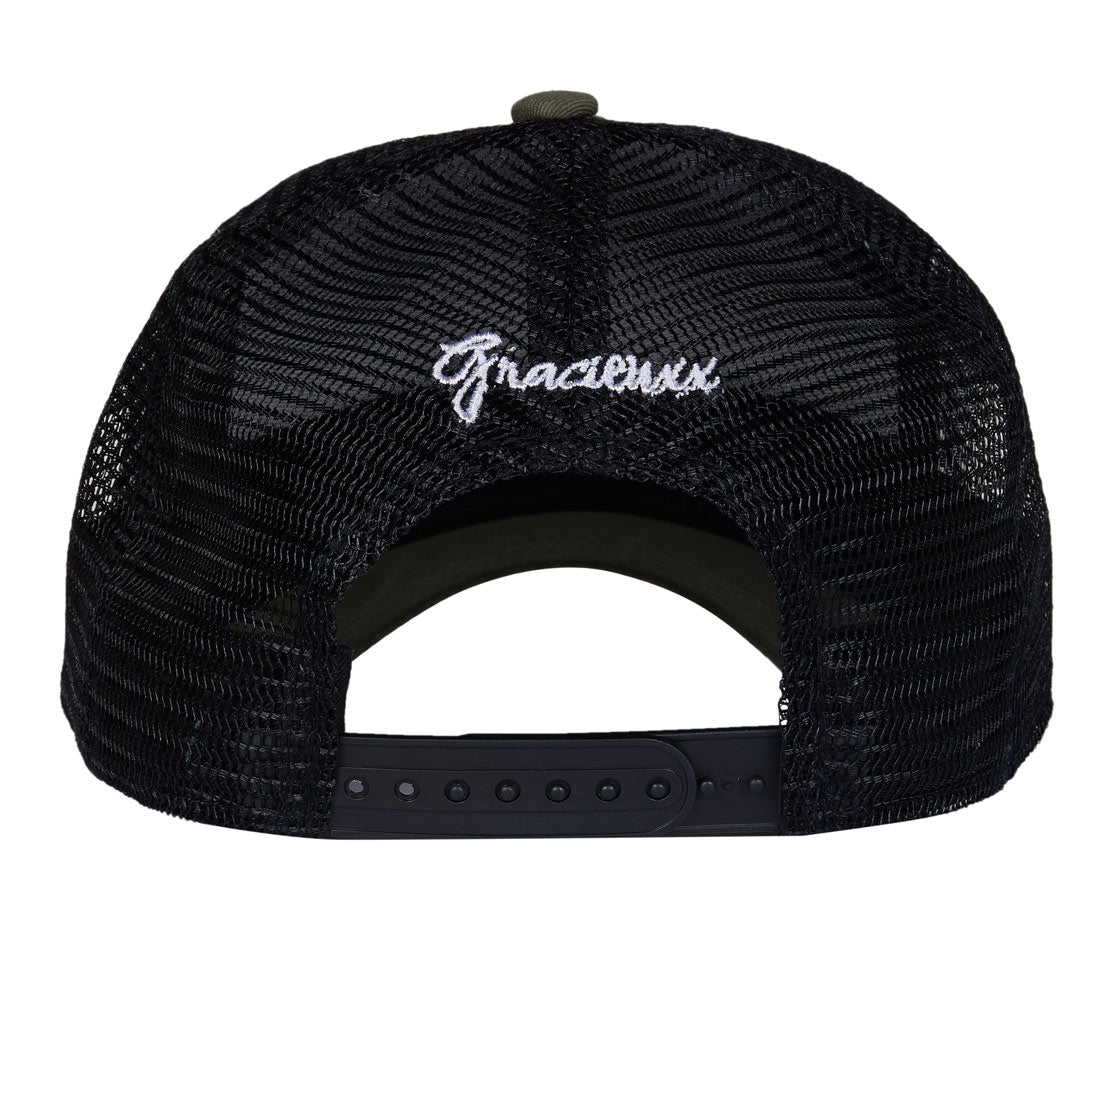 Stay Gracieuxx Ltd Edition Trucker Cap-Kaki